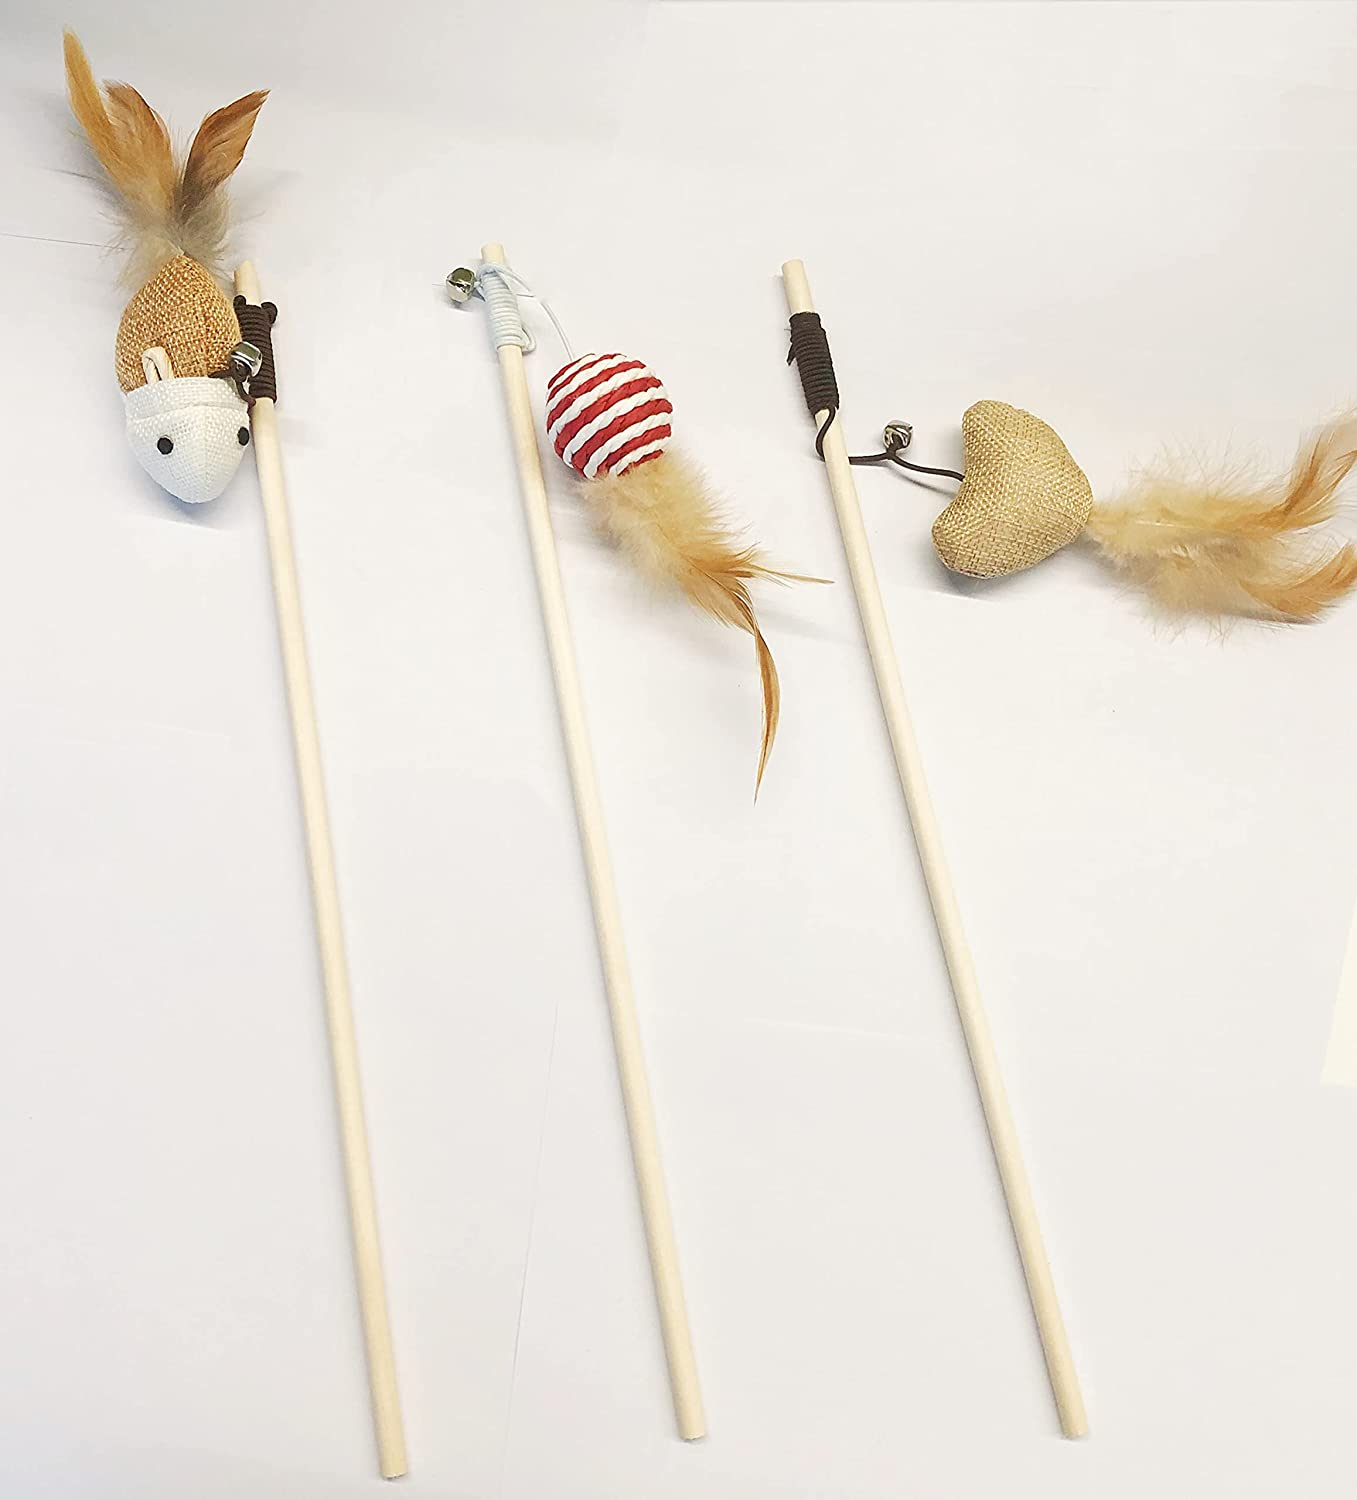 Cat Toys Funny OFFicial Stick 3 Fe Interactive Toy San Francisco Mall Wand Sets.